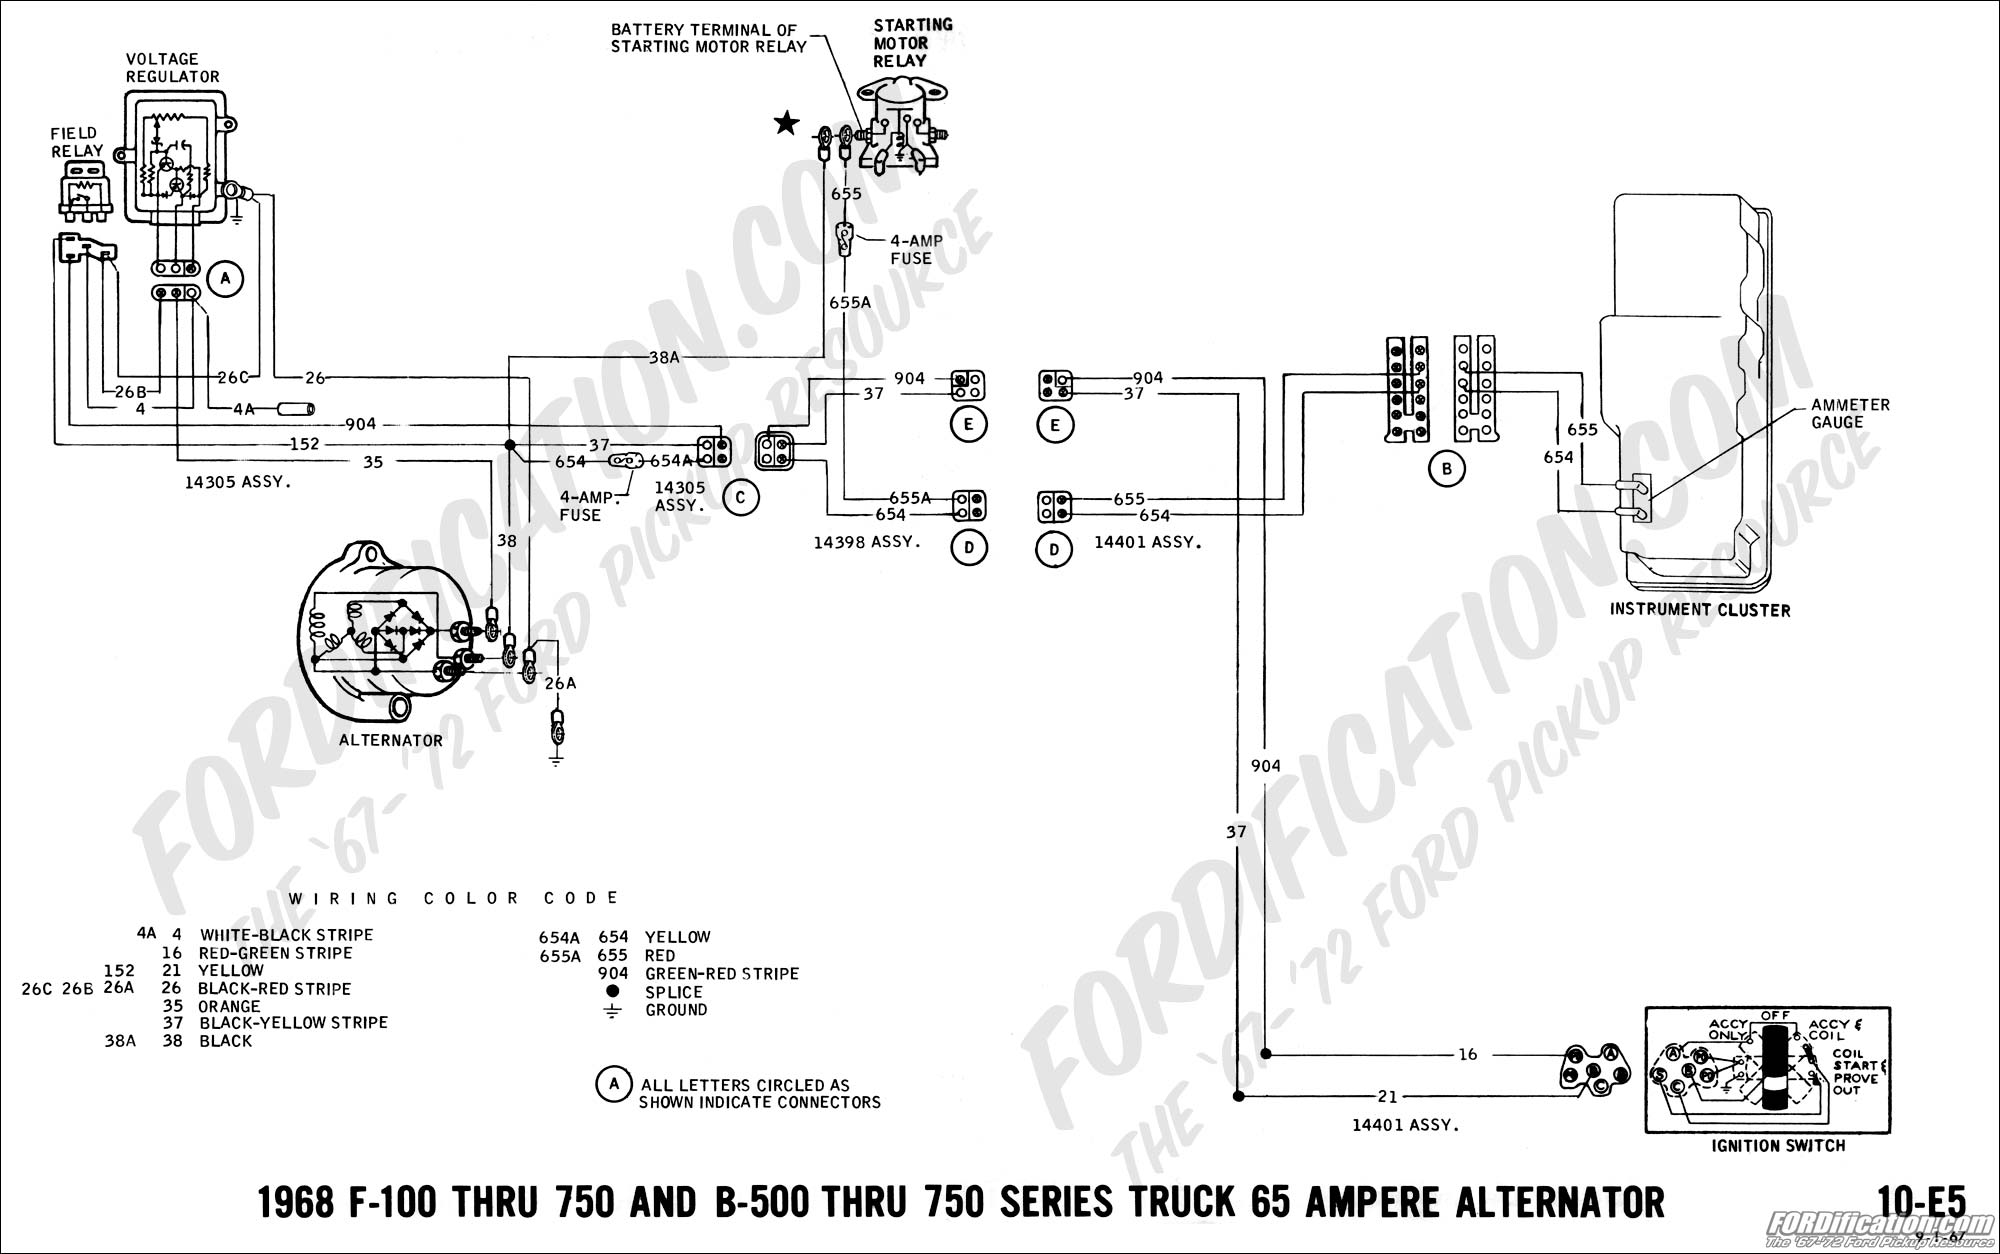 68 07 ford truck technical drawings and schematics section h wiring 1969 ford f100 wiring diagram at creativeand.co